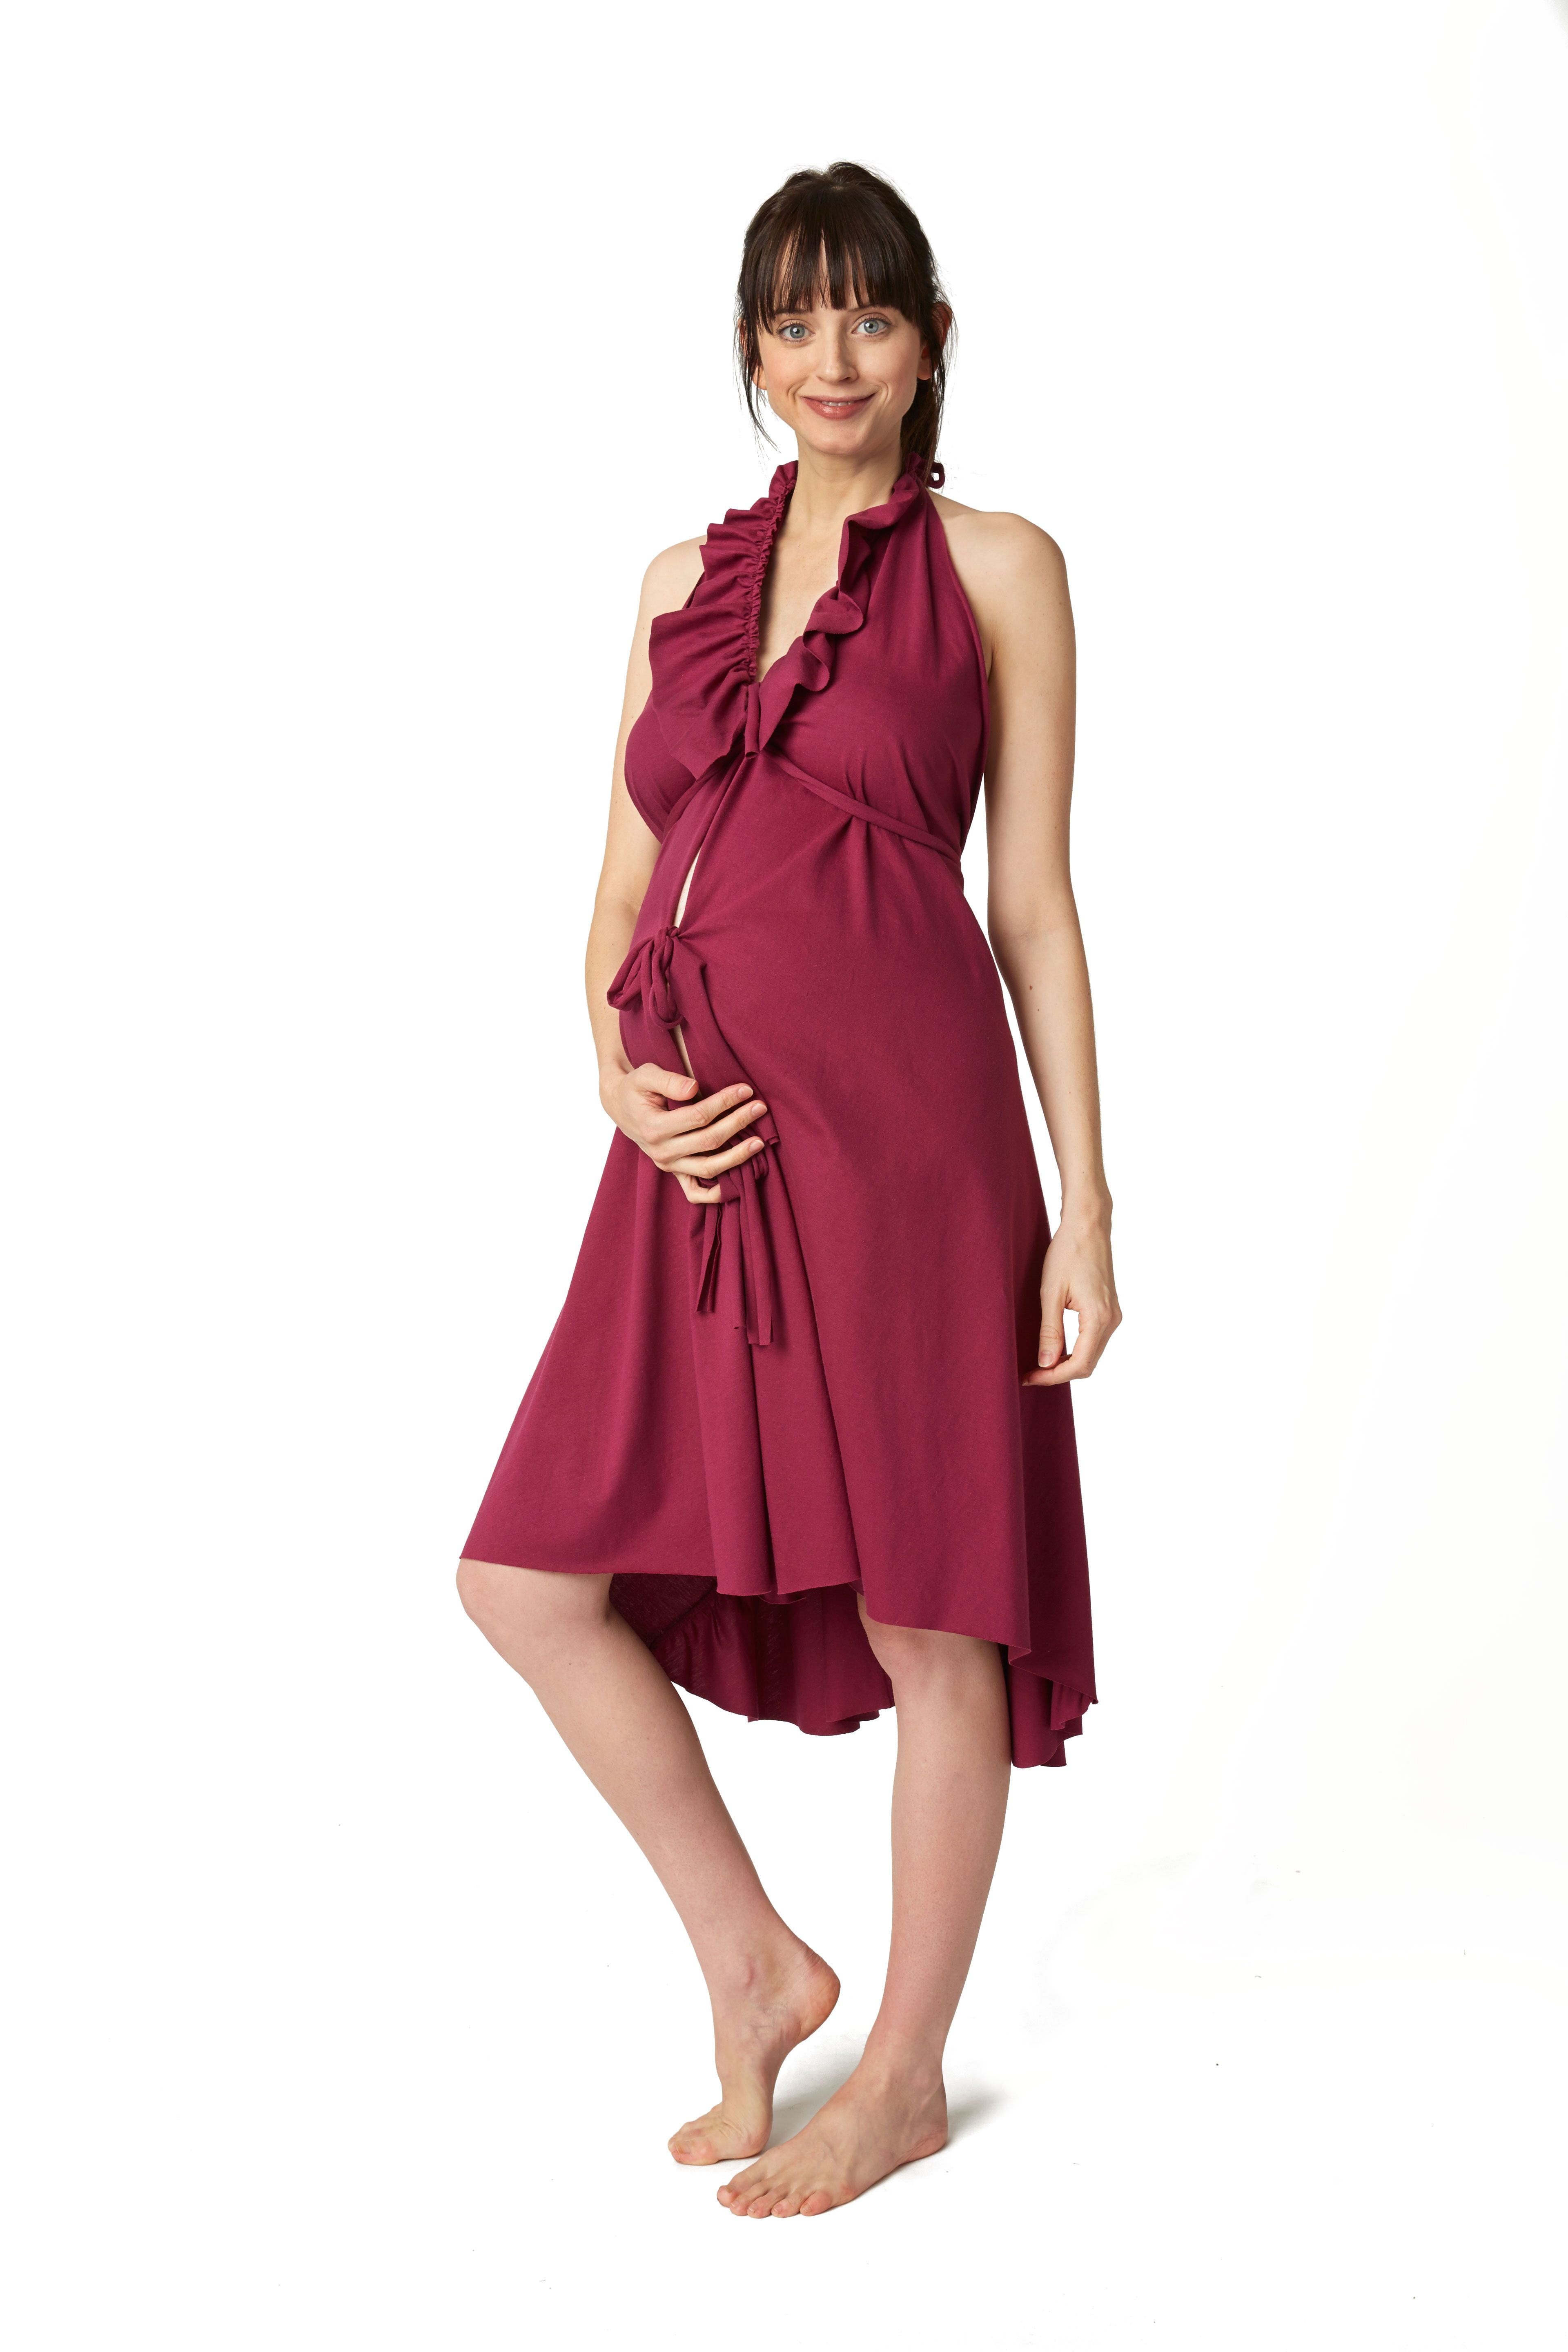 2505fd92952 Ruffle Labor Gown in Wine by Pretty Pushers. Only at Amazon.com 100%  cotton